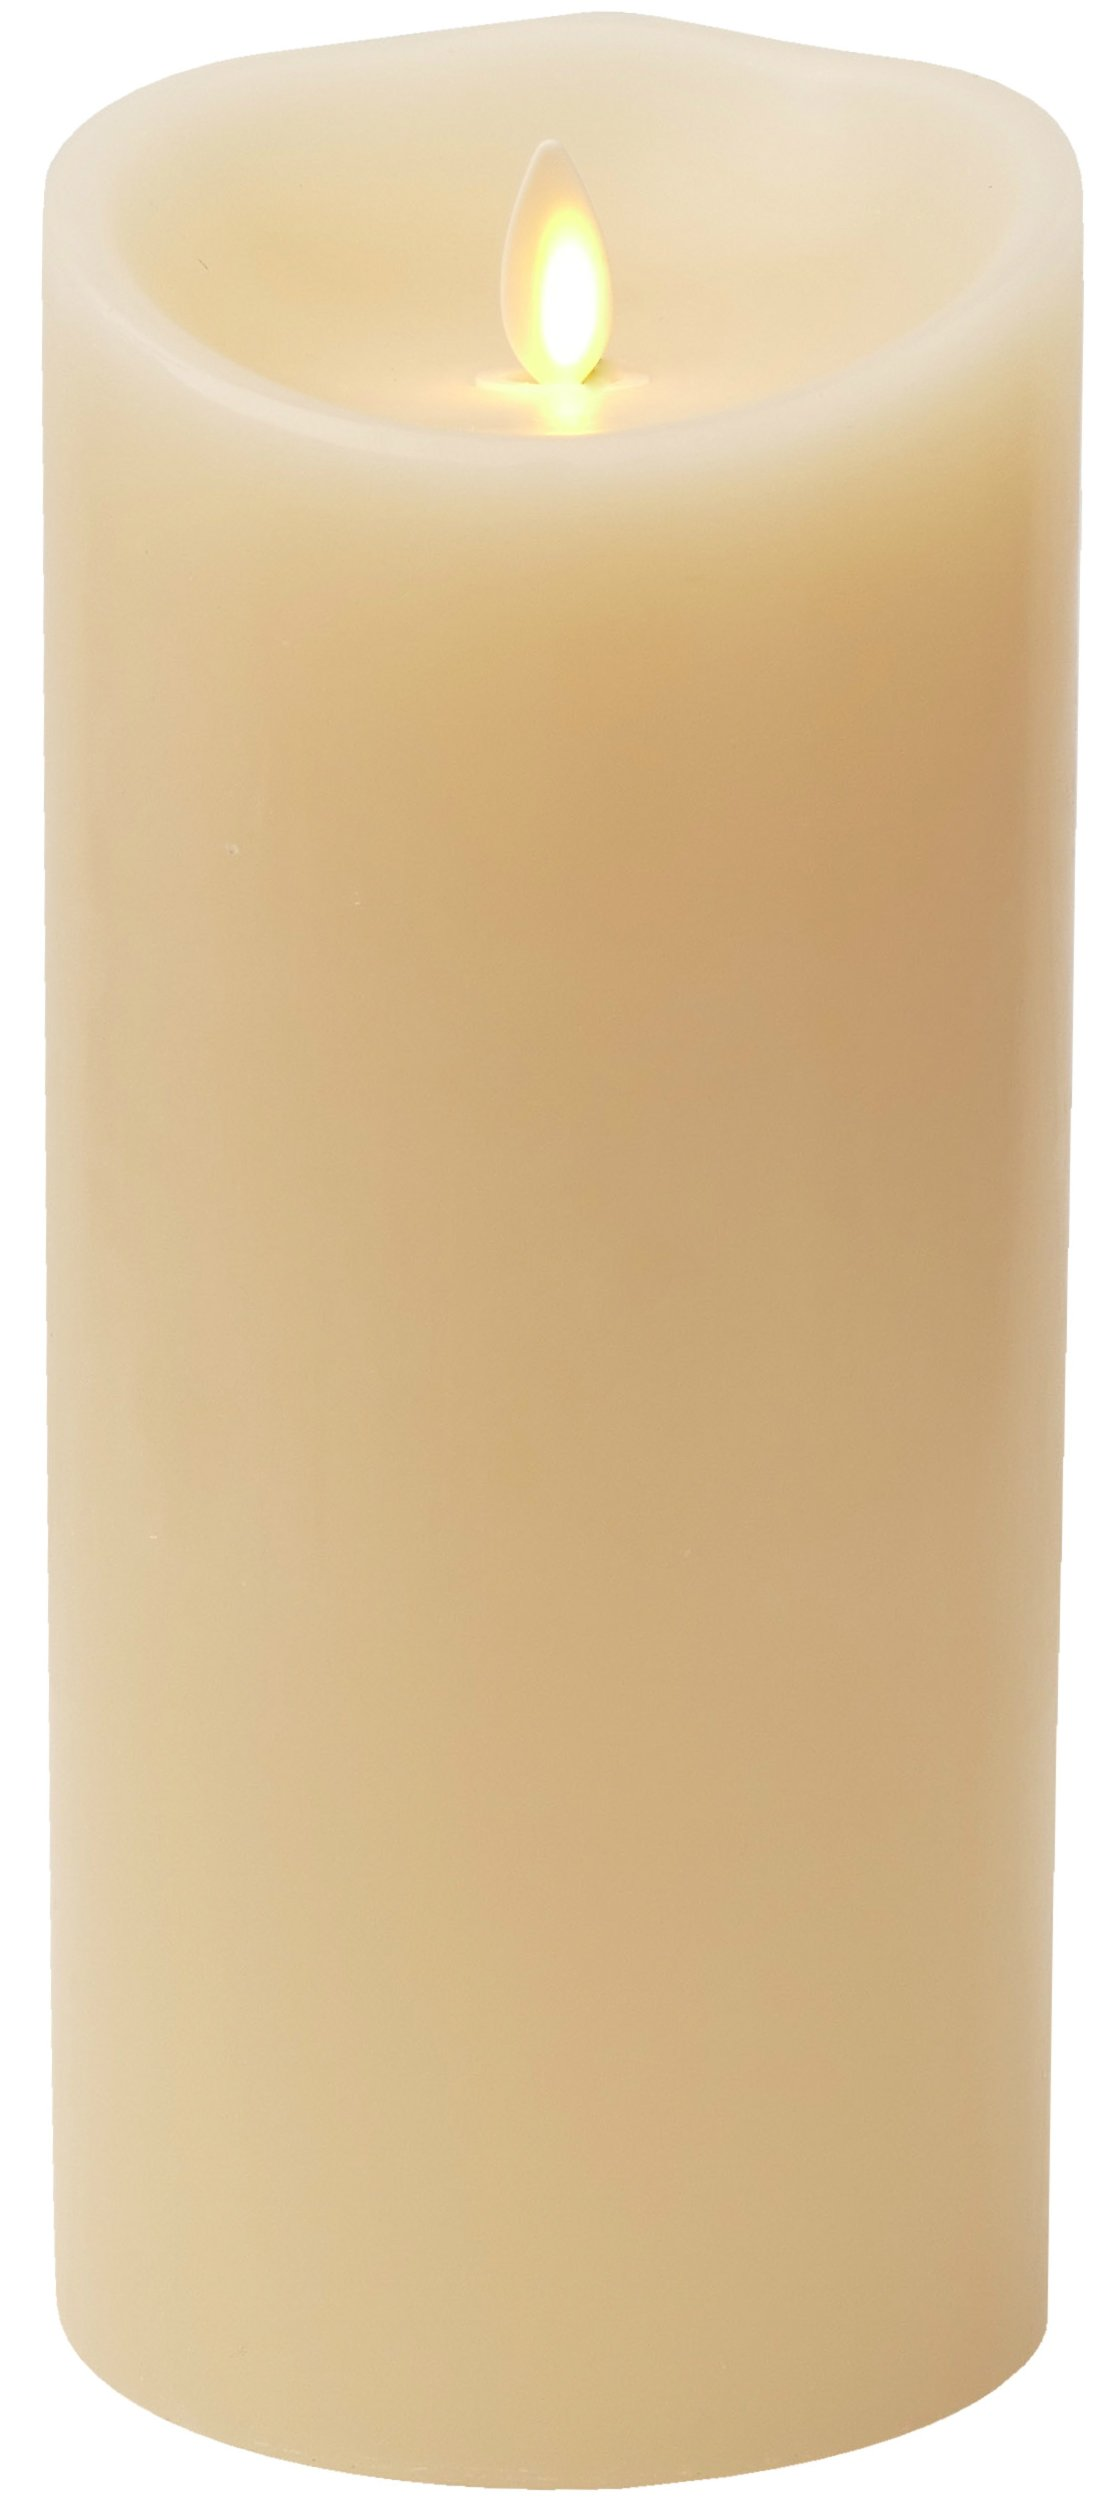 Darice Luminara® Flameless Candle - Ivory Wax Unscented Classic Pillar - 9 in